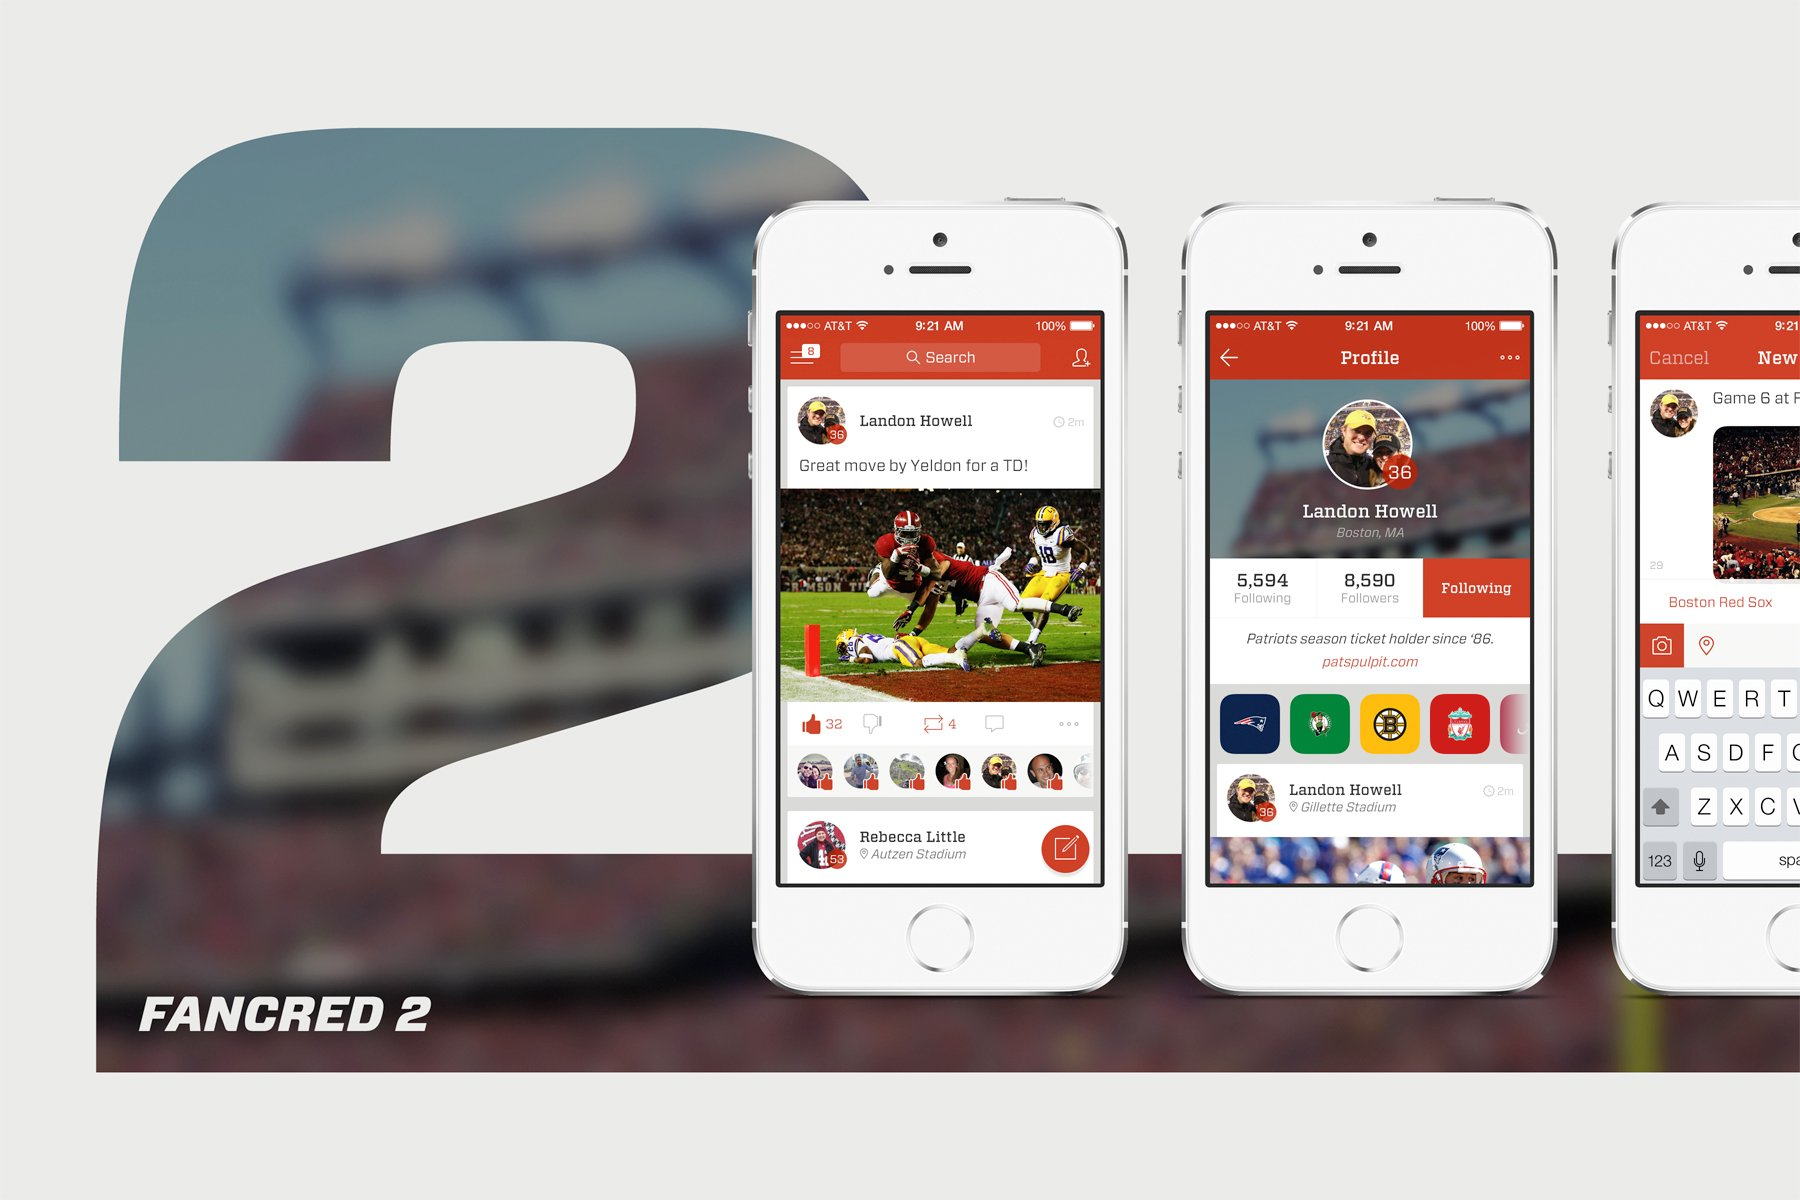 Sports Fans Are Flocking To Fancred 2.0 For iPhone